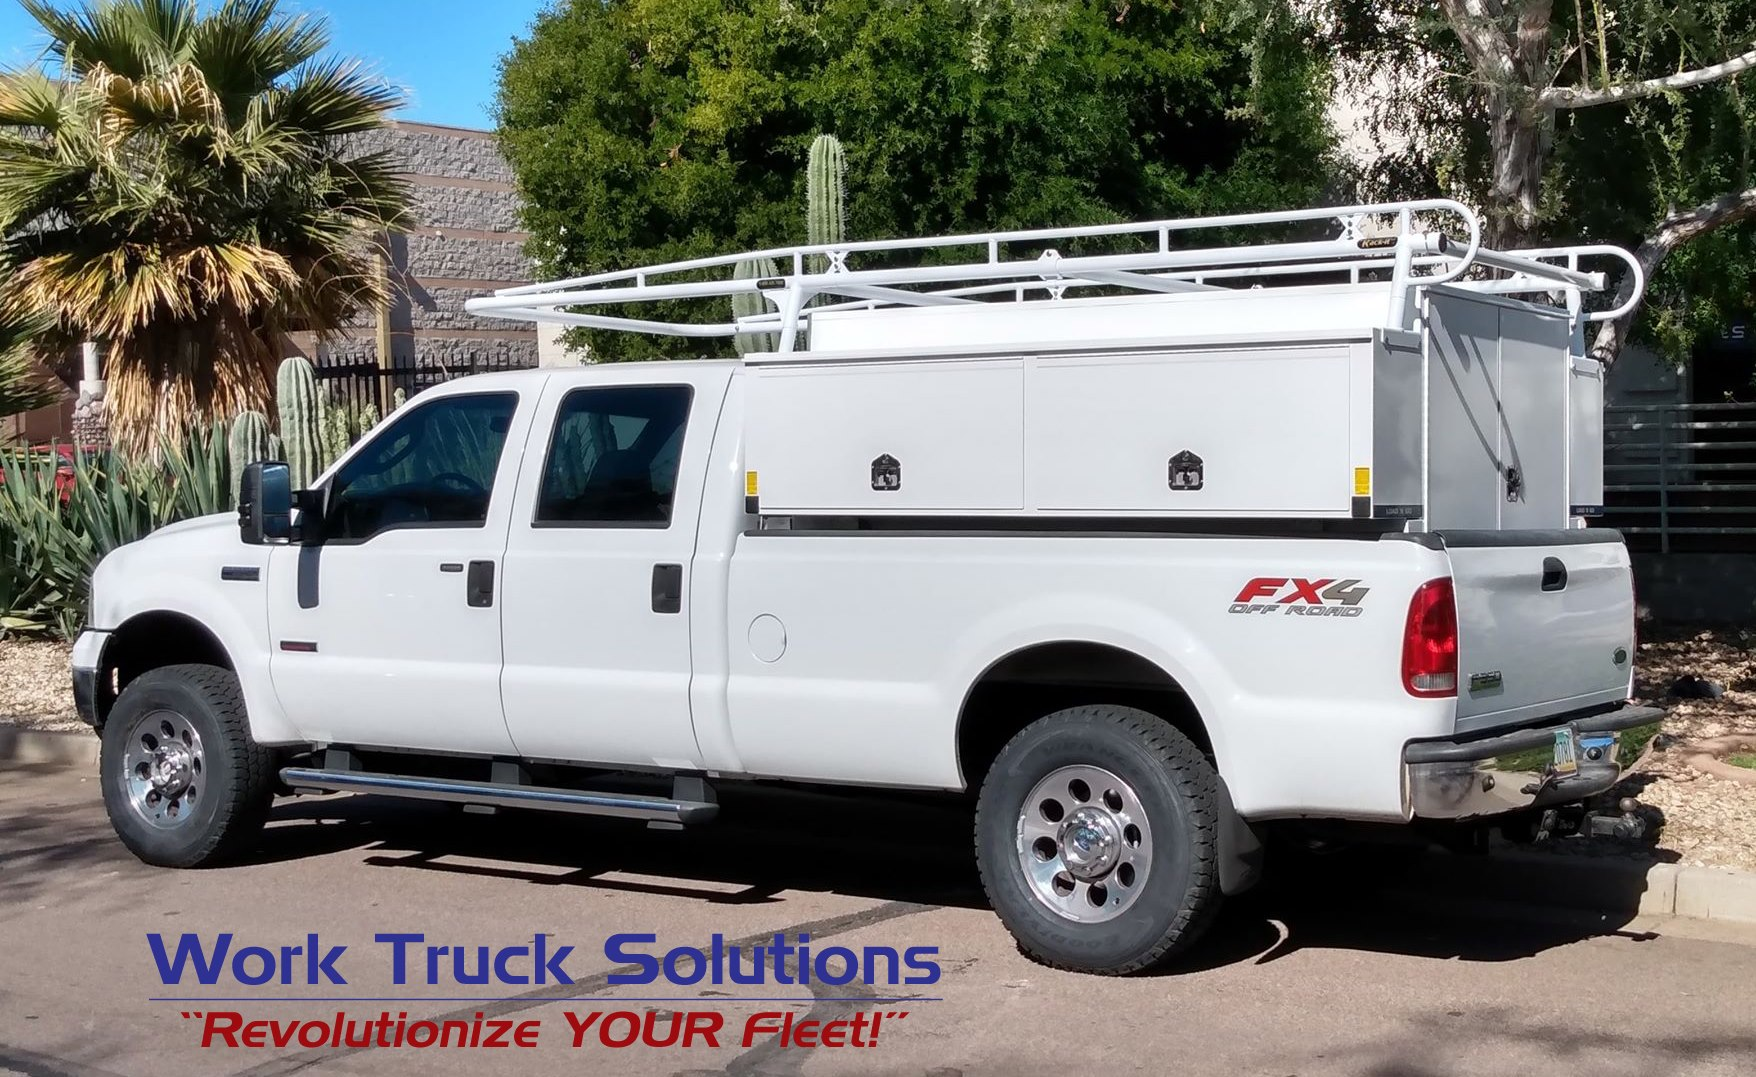 ST-2000-8D by Work Truck Solutions